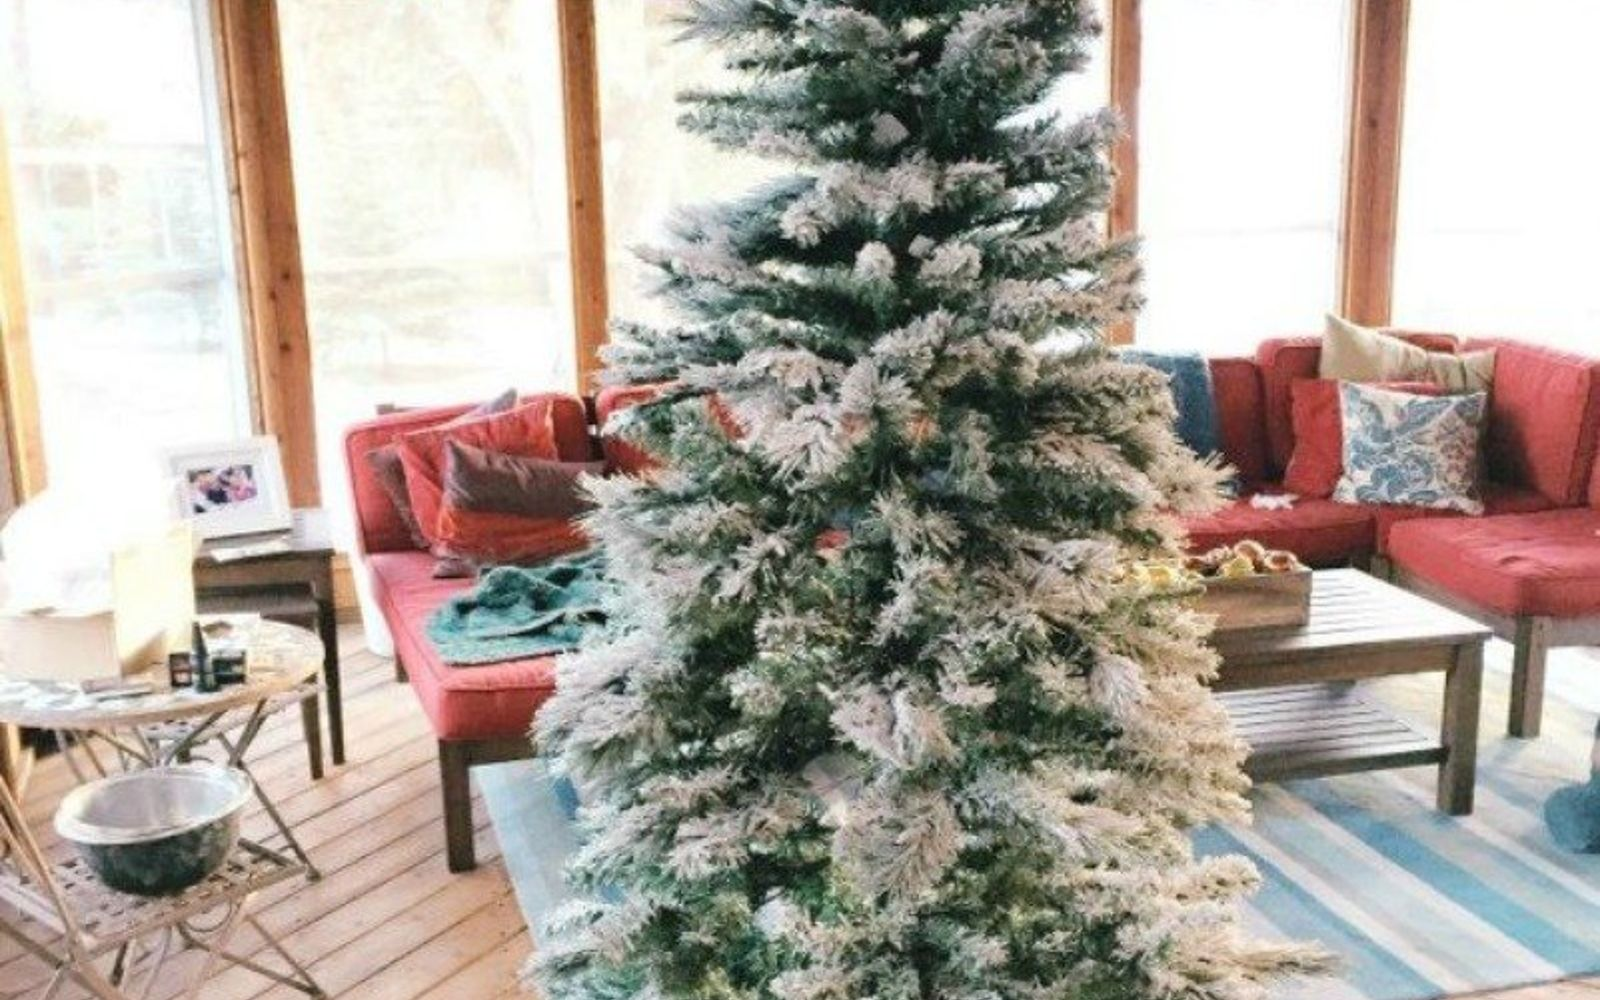 Tons Of Christmas Decorating: Don't Stop At Ornaments! These Tree Decorating Ideas Are